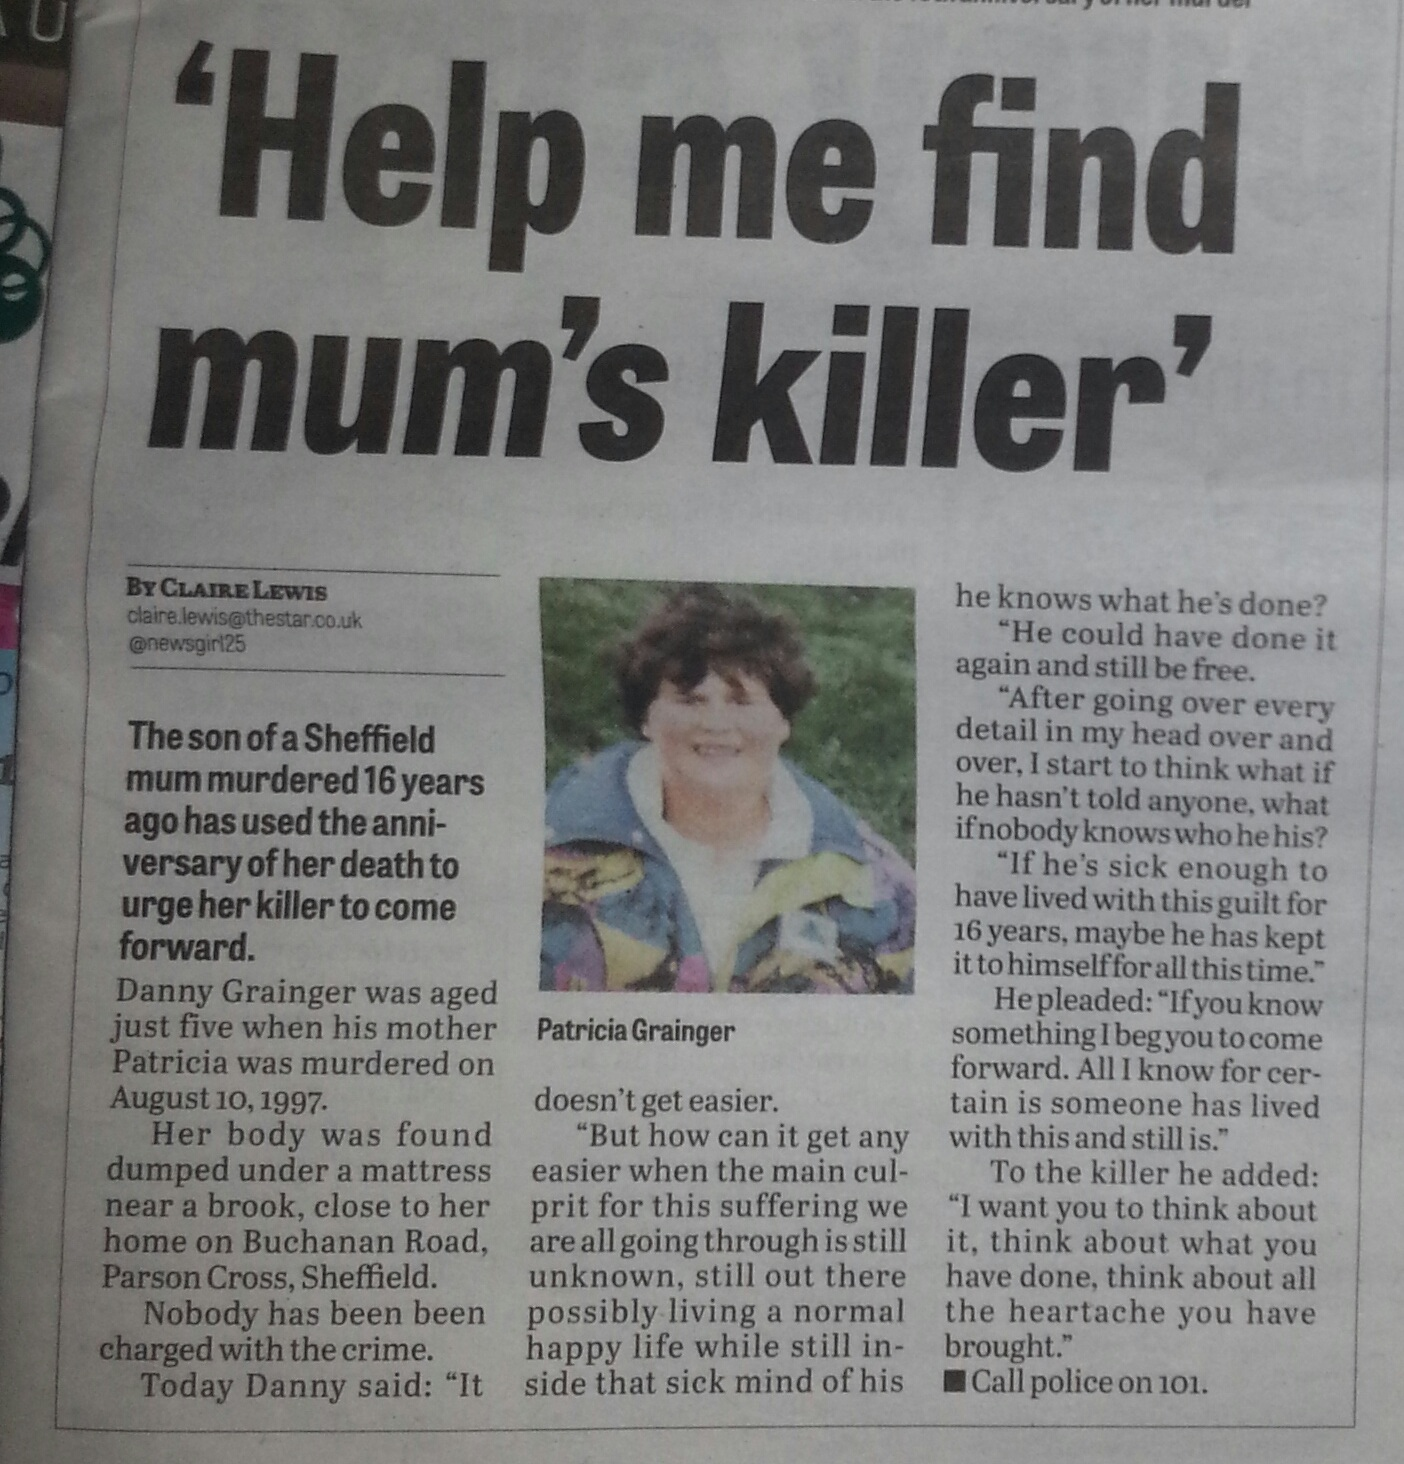 Help_find_mums_killer_article.jpg